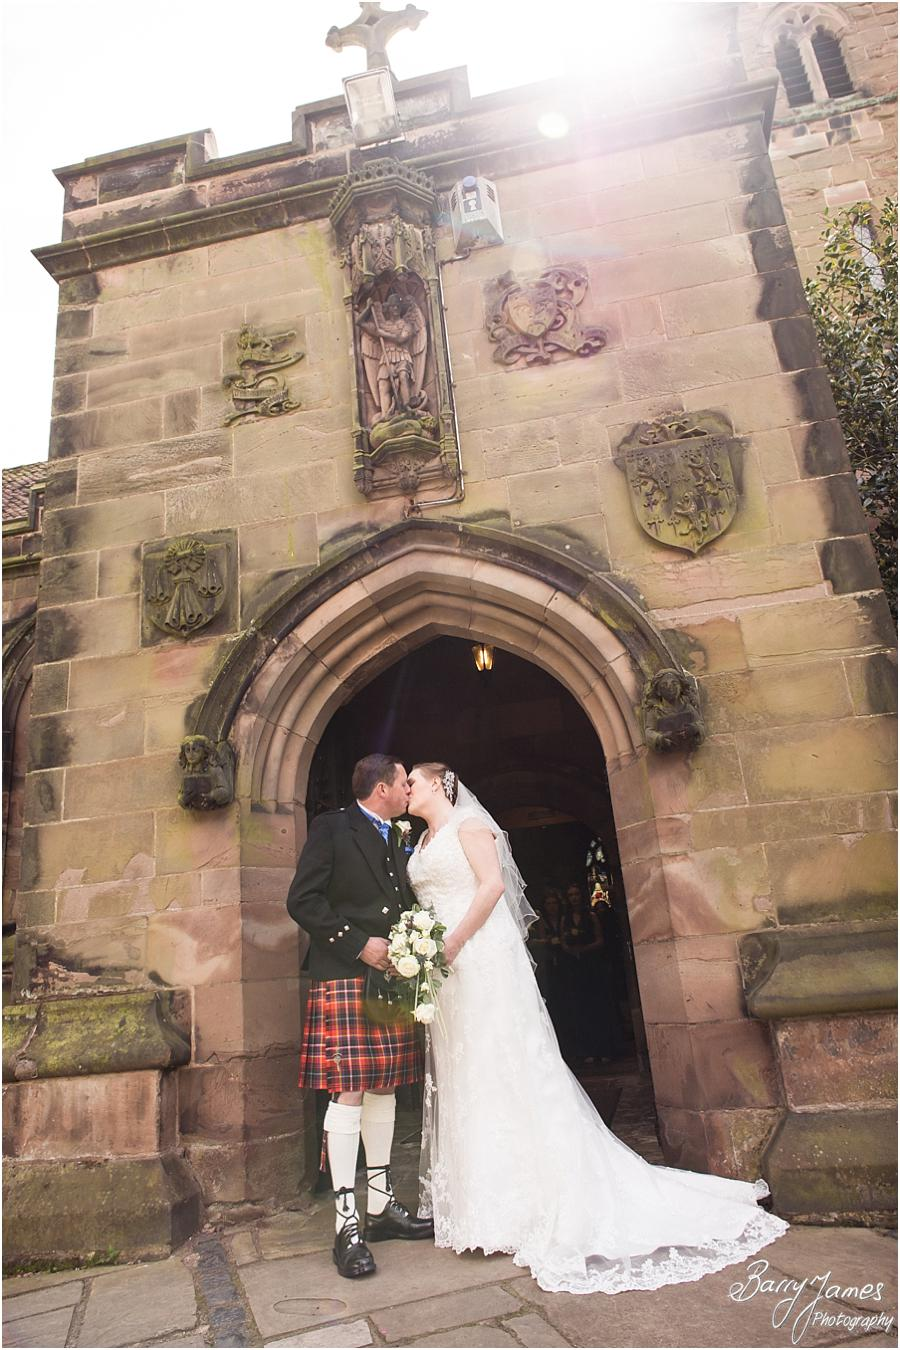 Storytelling photographs of the wonderful ceremony at Saint Michael Greenhill Church in Lichfield by Sutton Coldfield Wedding Photographer Barry James